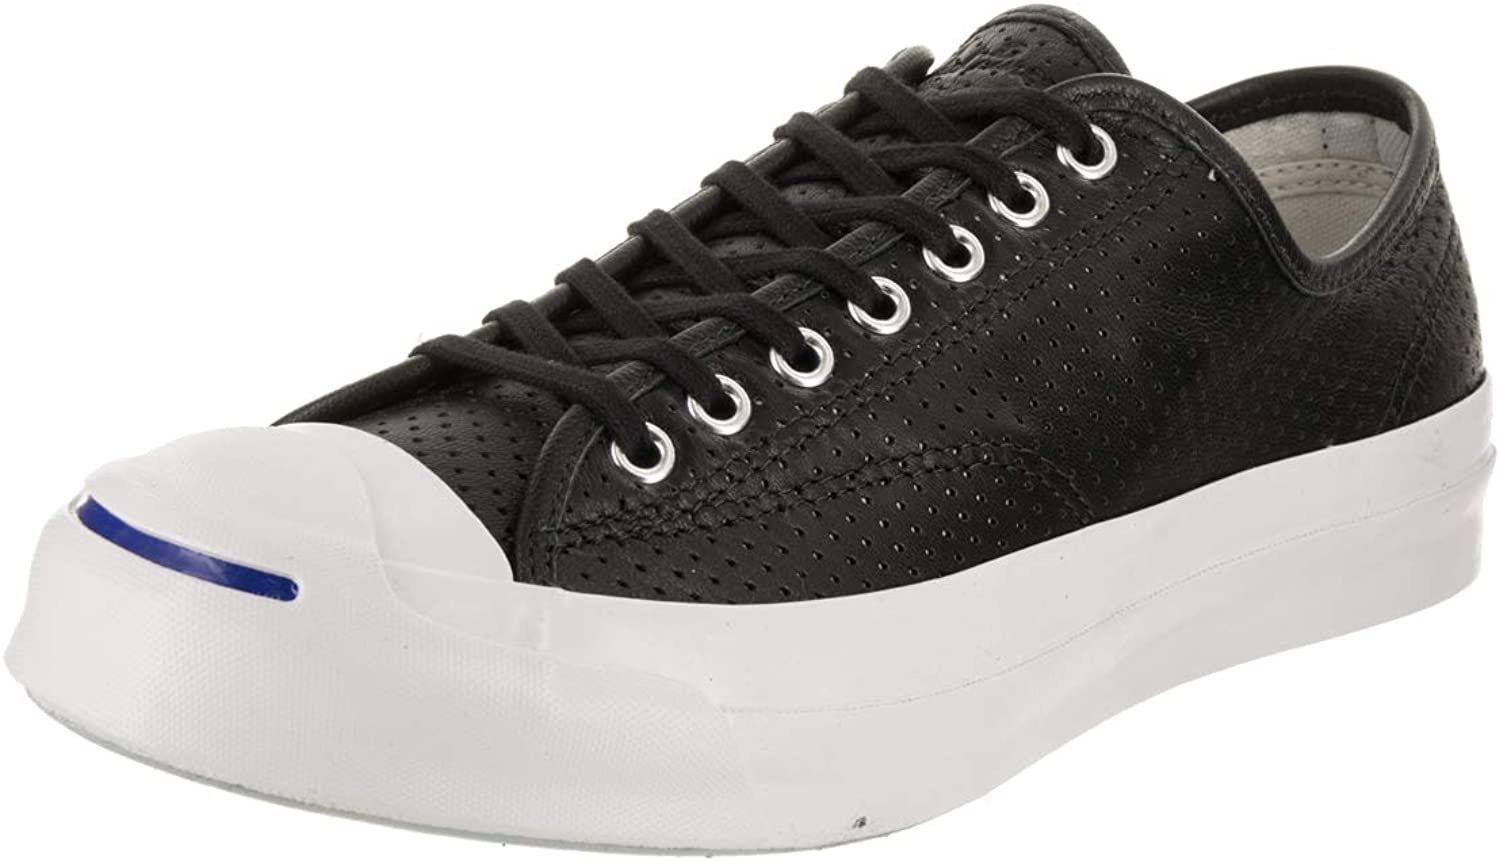 Converse Unisex Jack Purcell Signature Ox Casual shoes